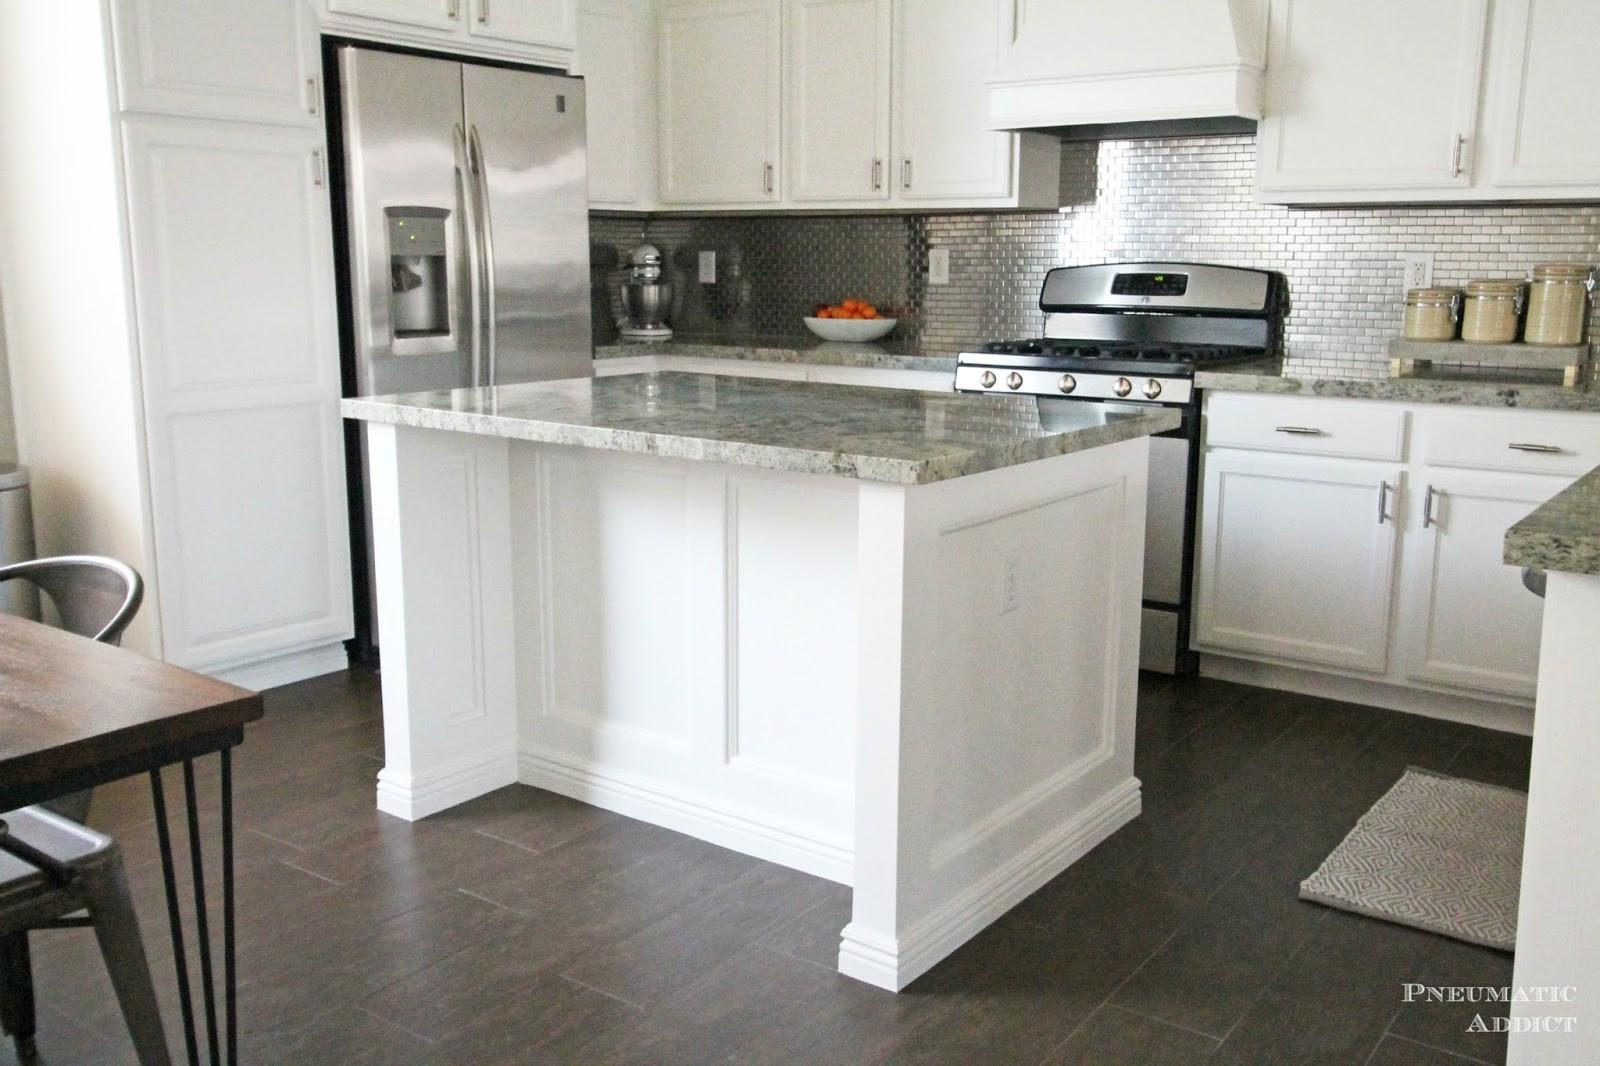 Pneumatic Addict Stacked Cabinet Kitchen Makeover